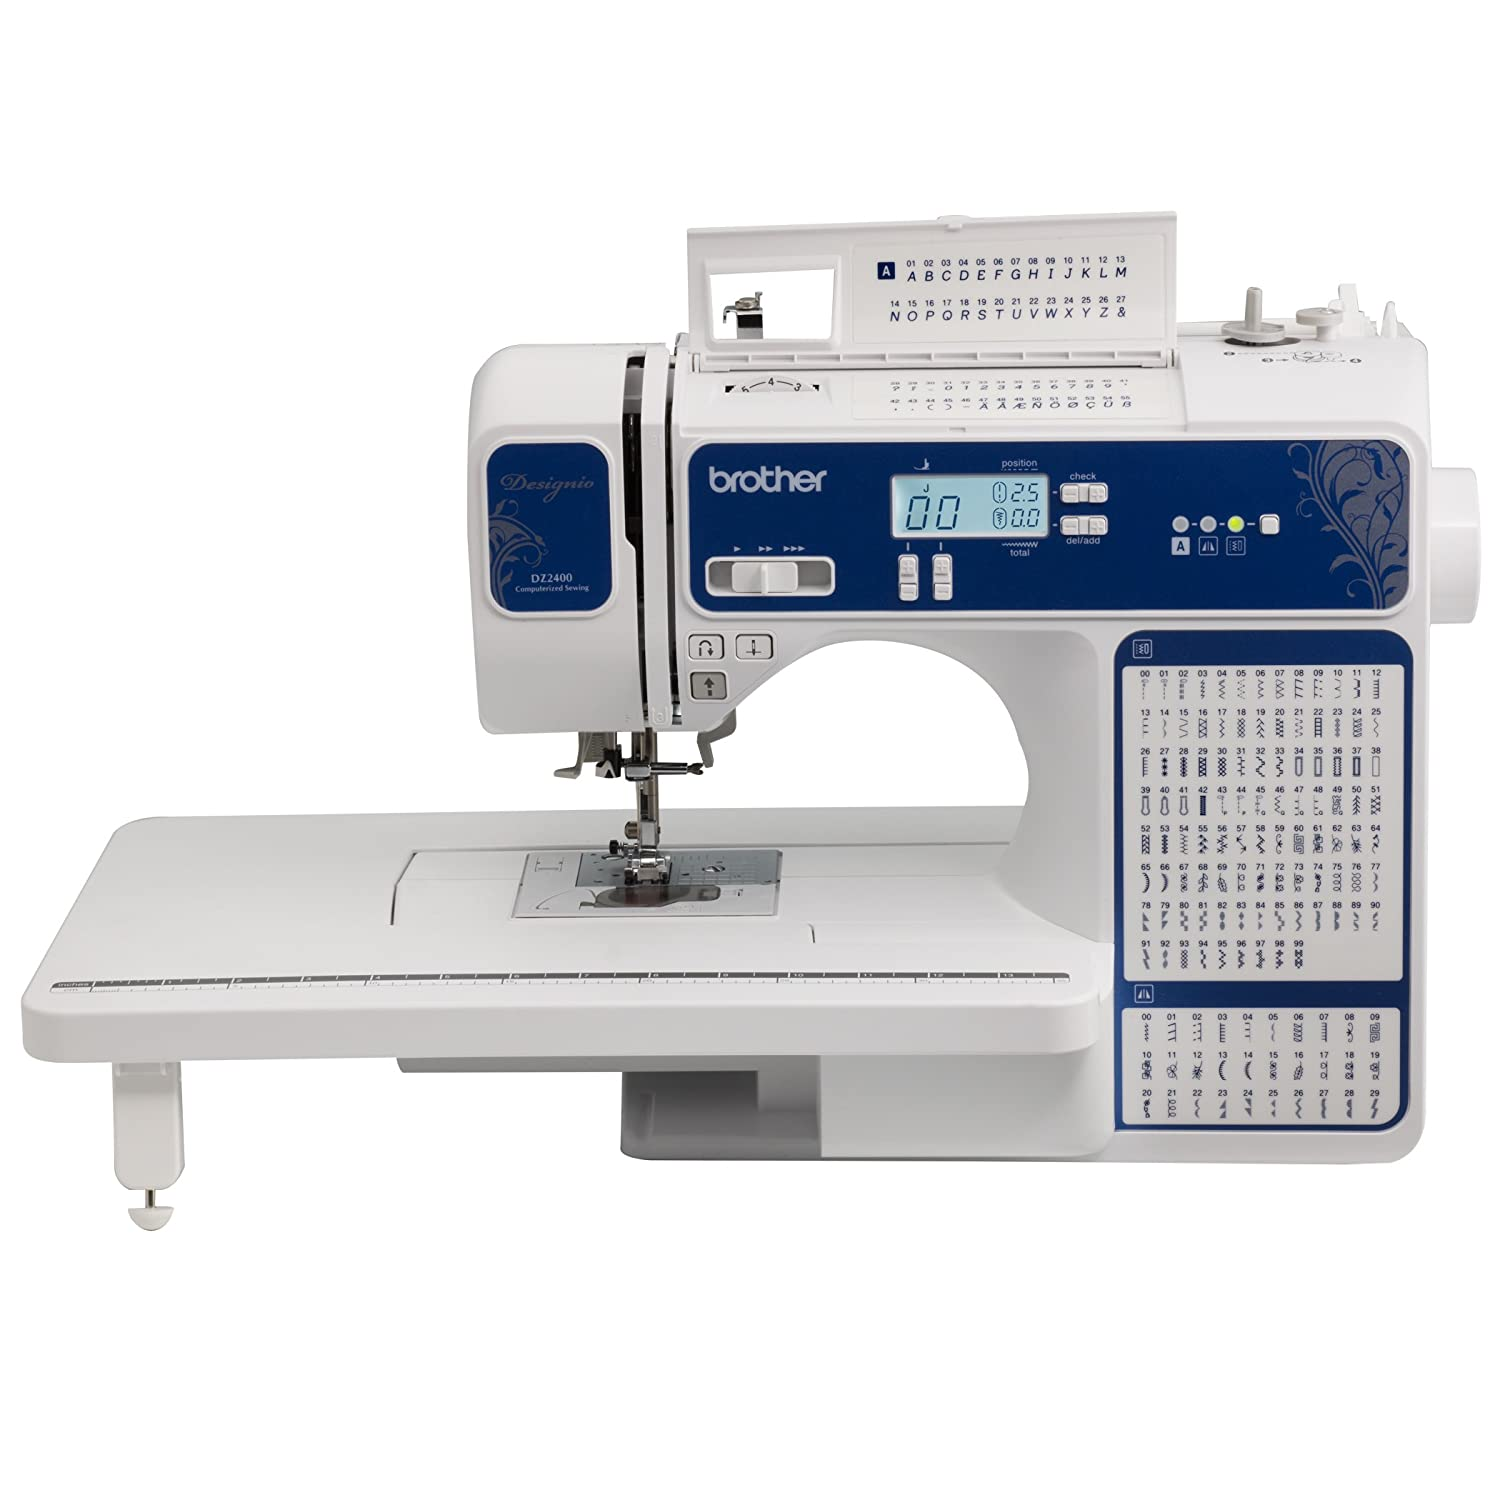 brother project sewing quilt quilting best beginner to advanced for machines of quilters runway machine